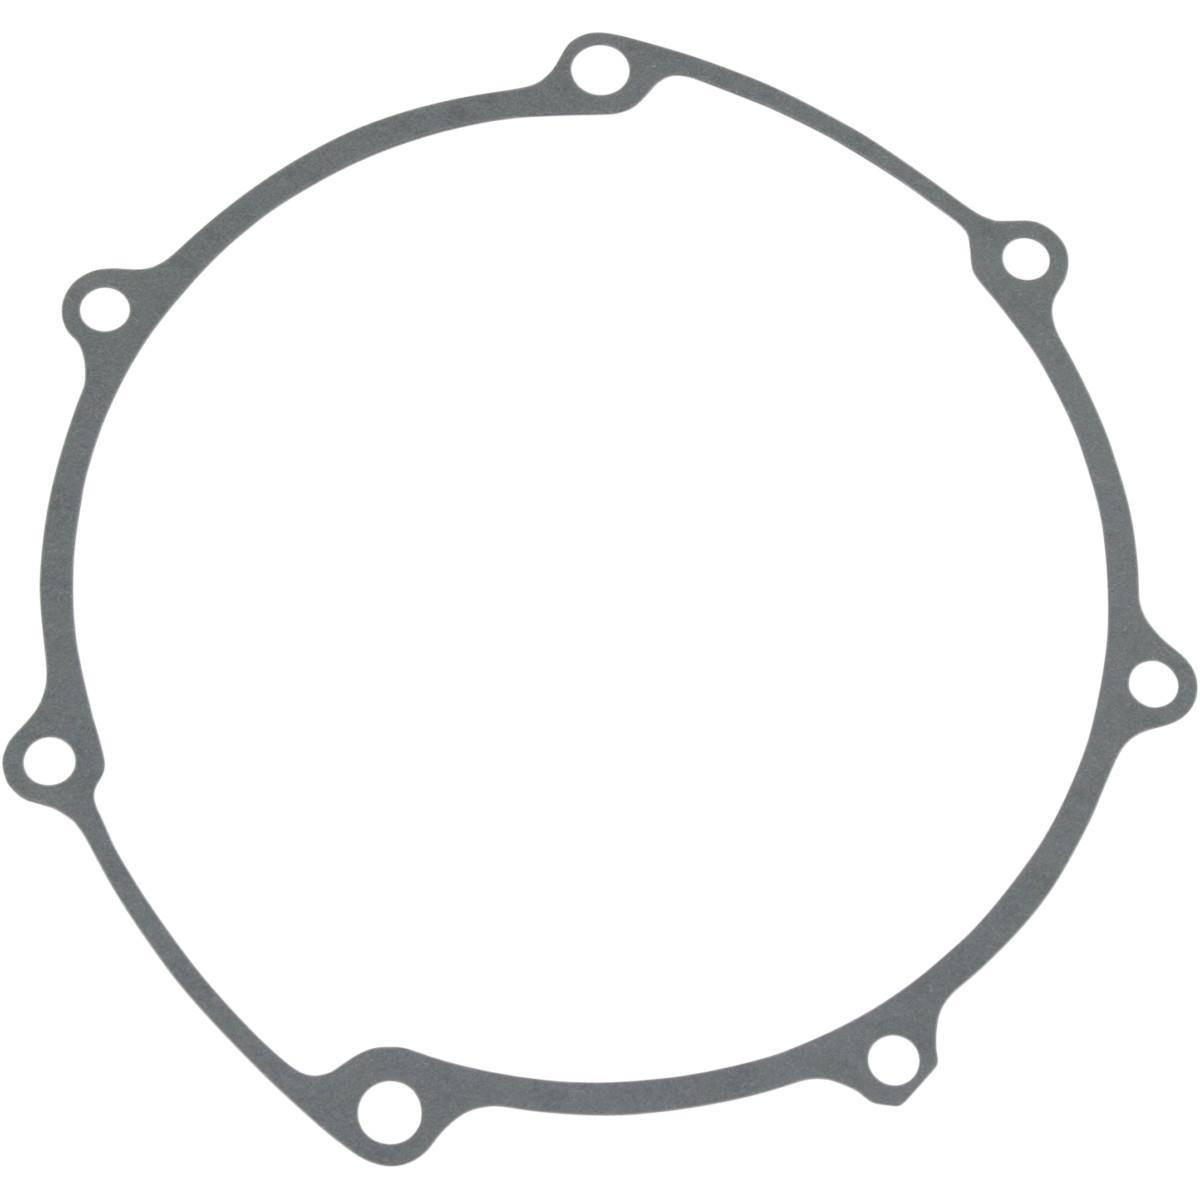 Clutch cover gasket for sale in westland mi moto man racing 734 454 7575